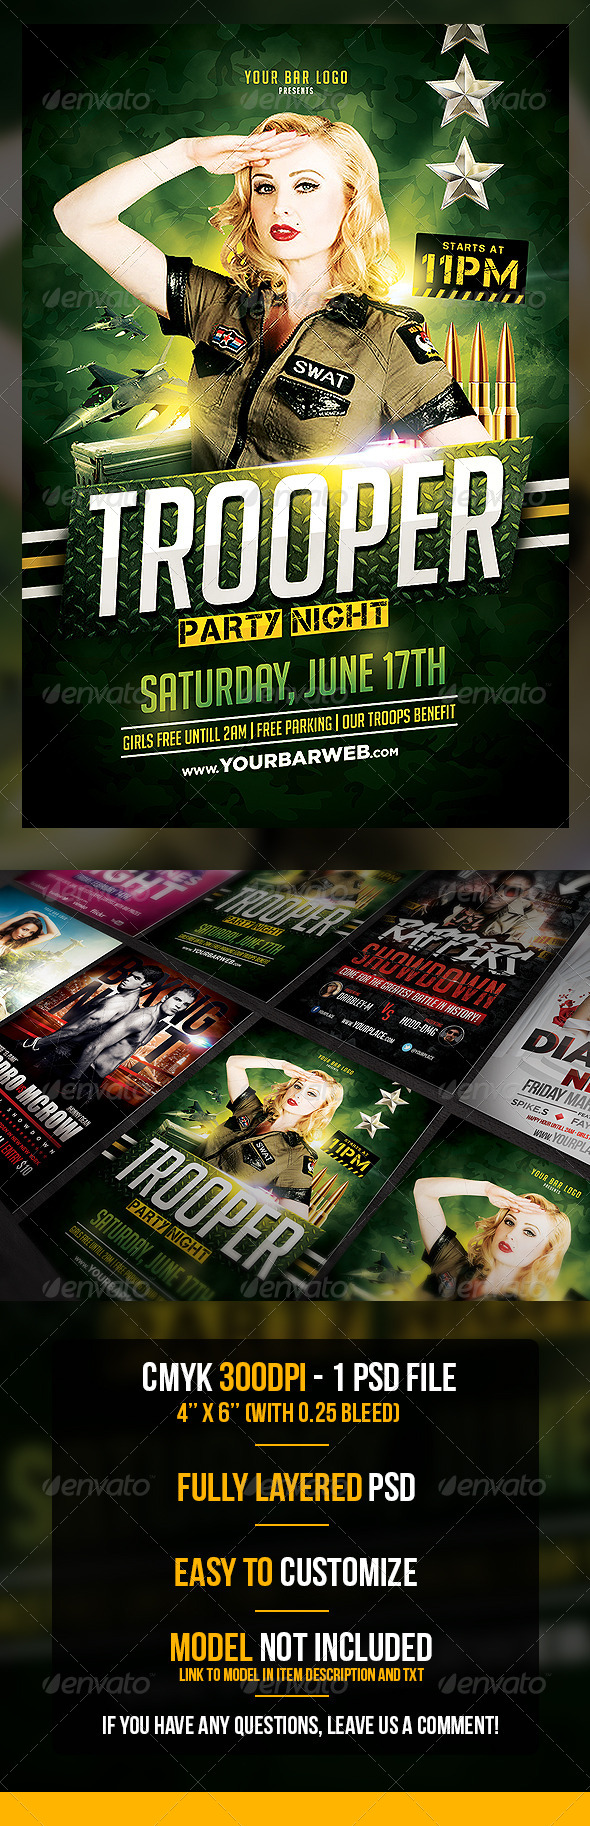 Trooper Flyer Template - Clubs & Parties Events